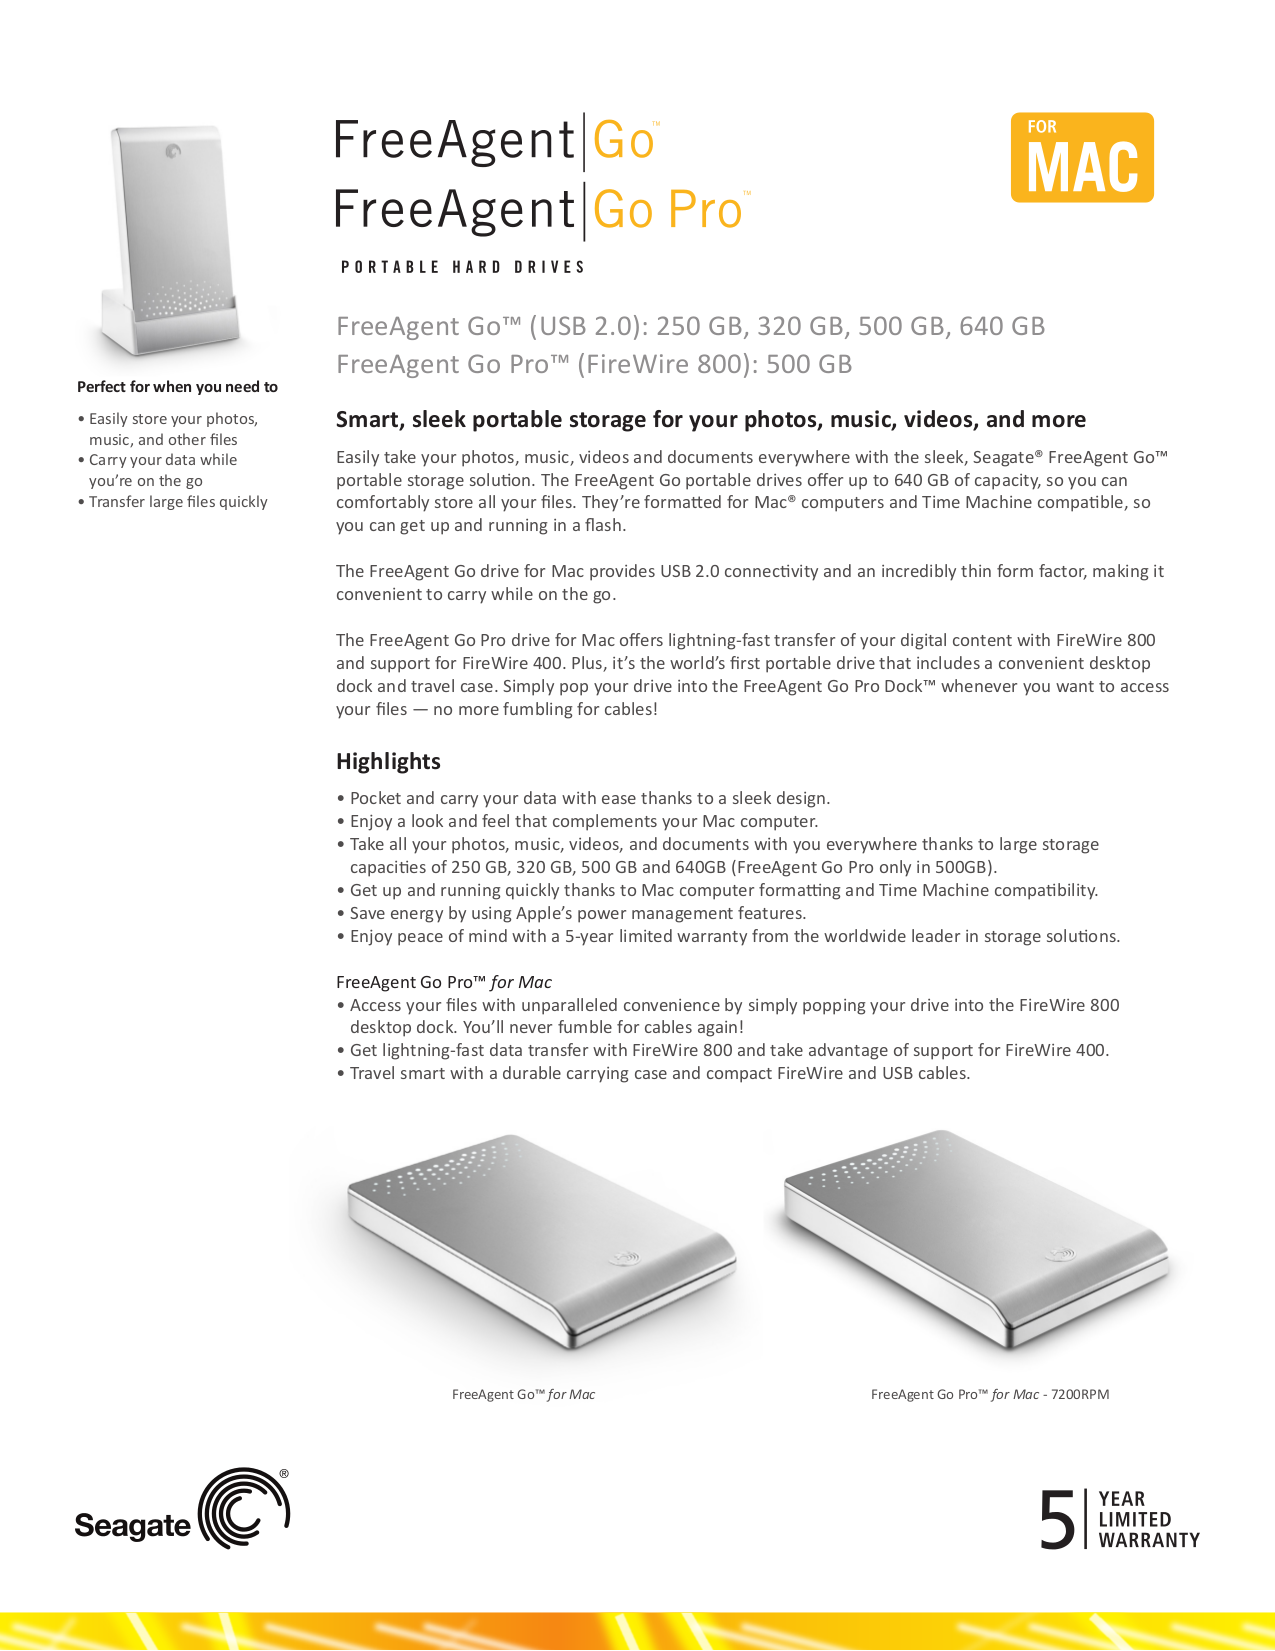 Create Mailchimp subscribers from new FreeAgent leads